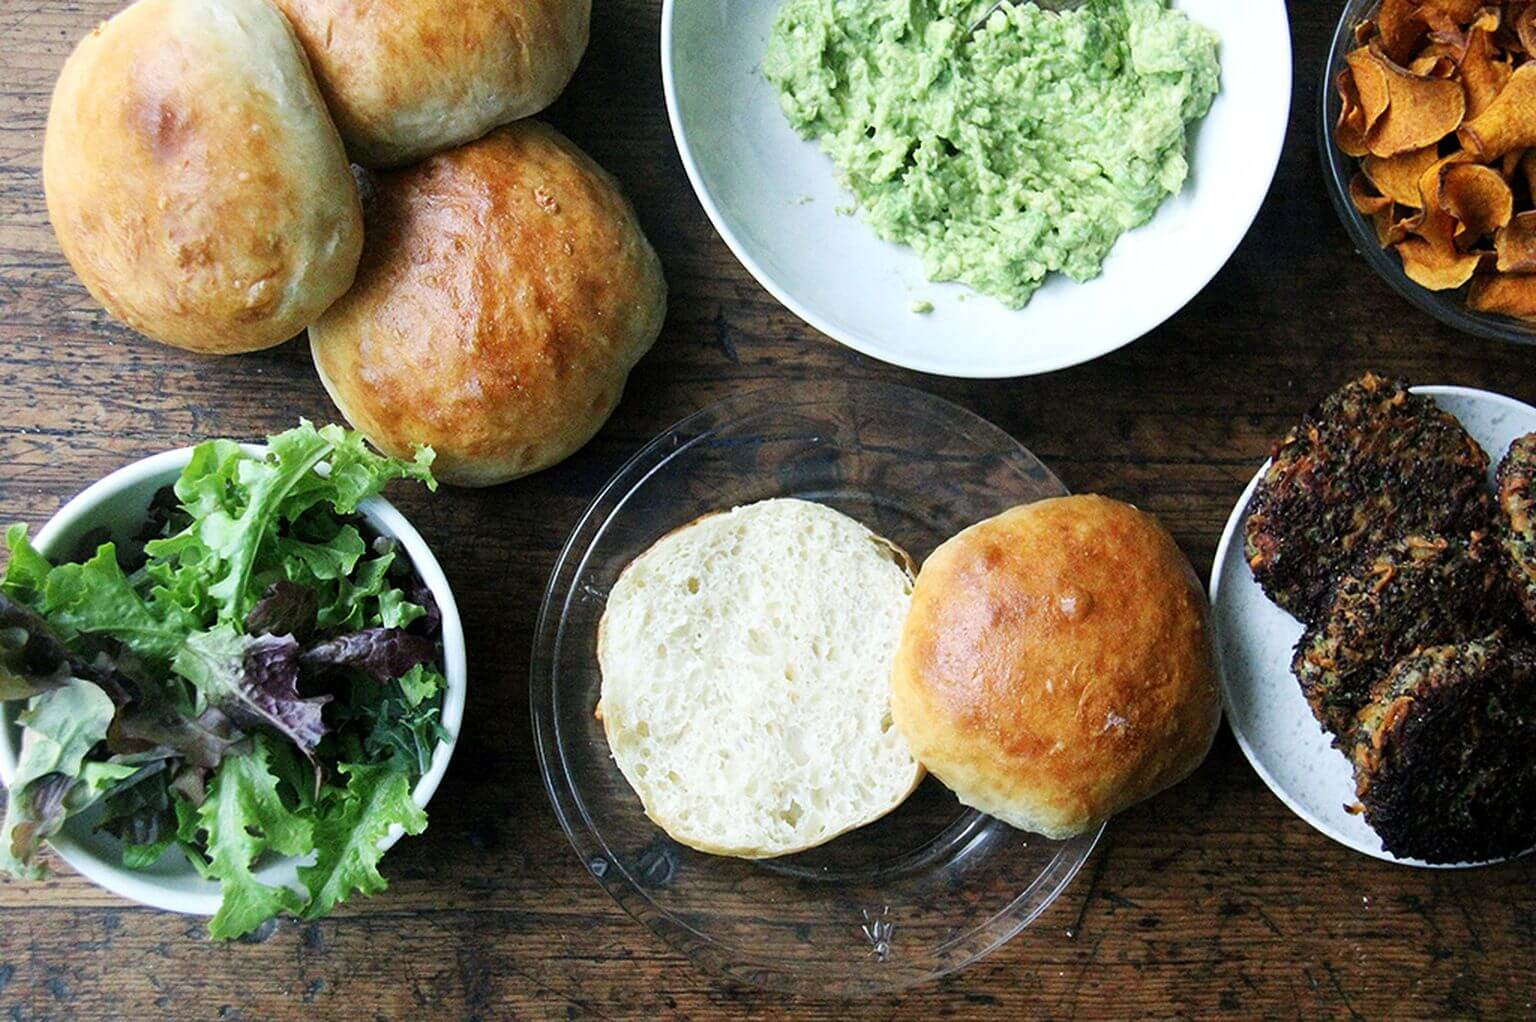 A board filled with homemade brioche buns, mashed avocado, and mushroom-quinoa burger patties.